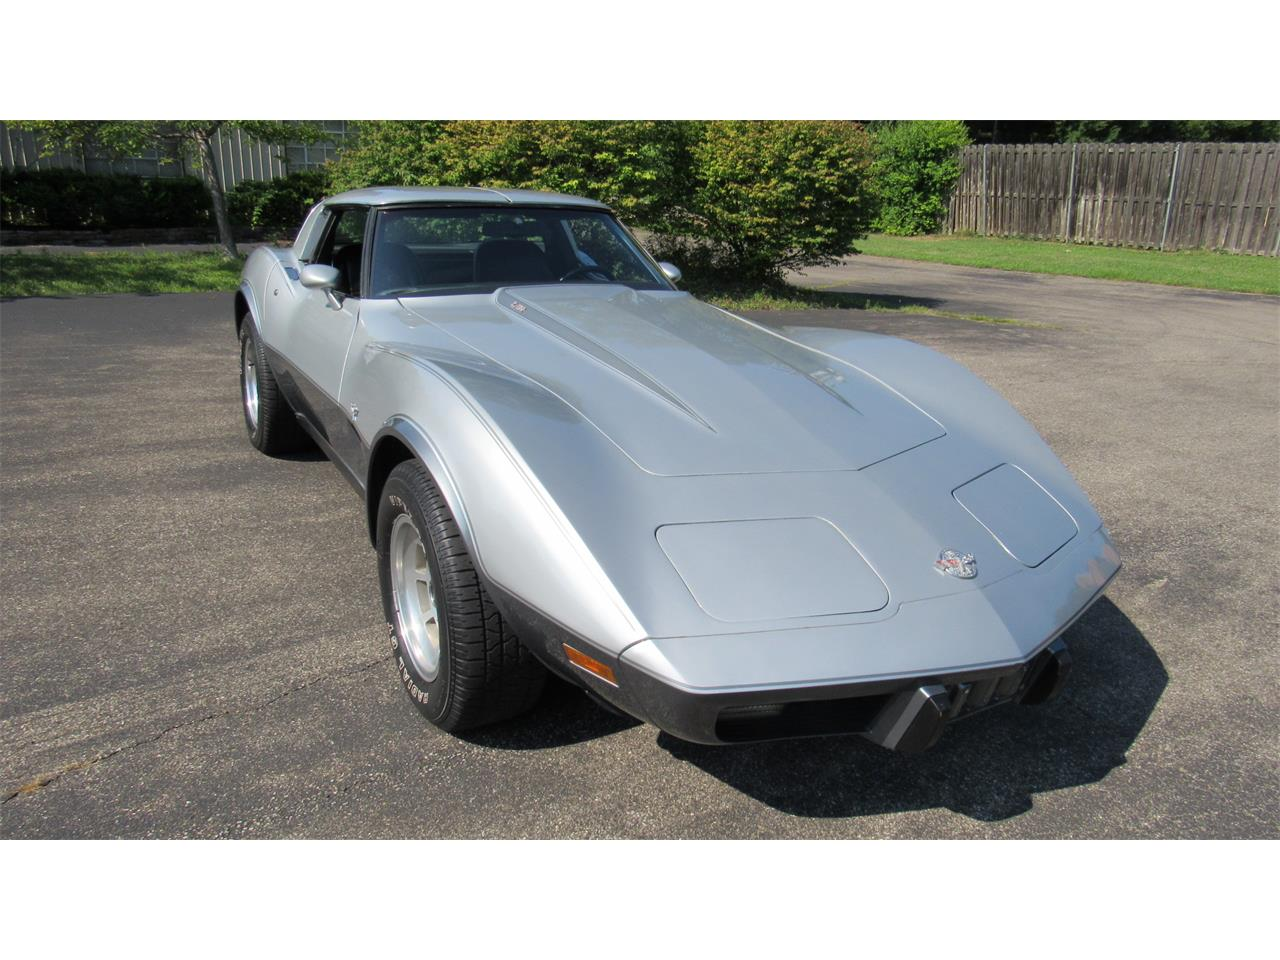 1978 Chevrolet Corvette (CC-1369552) for sale in Milford, Ohio